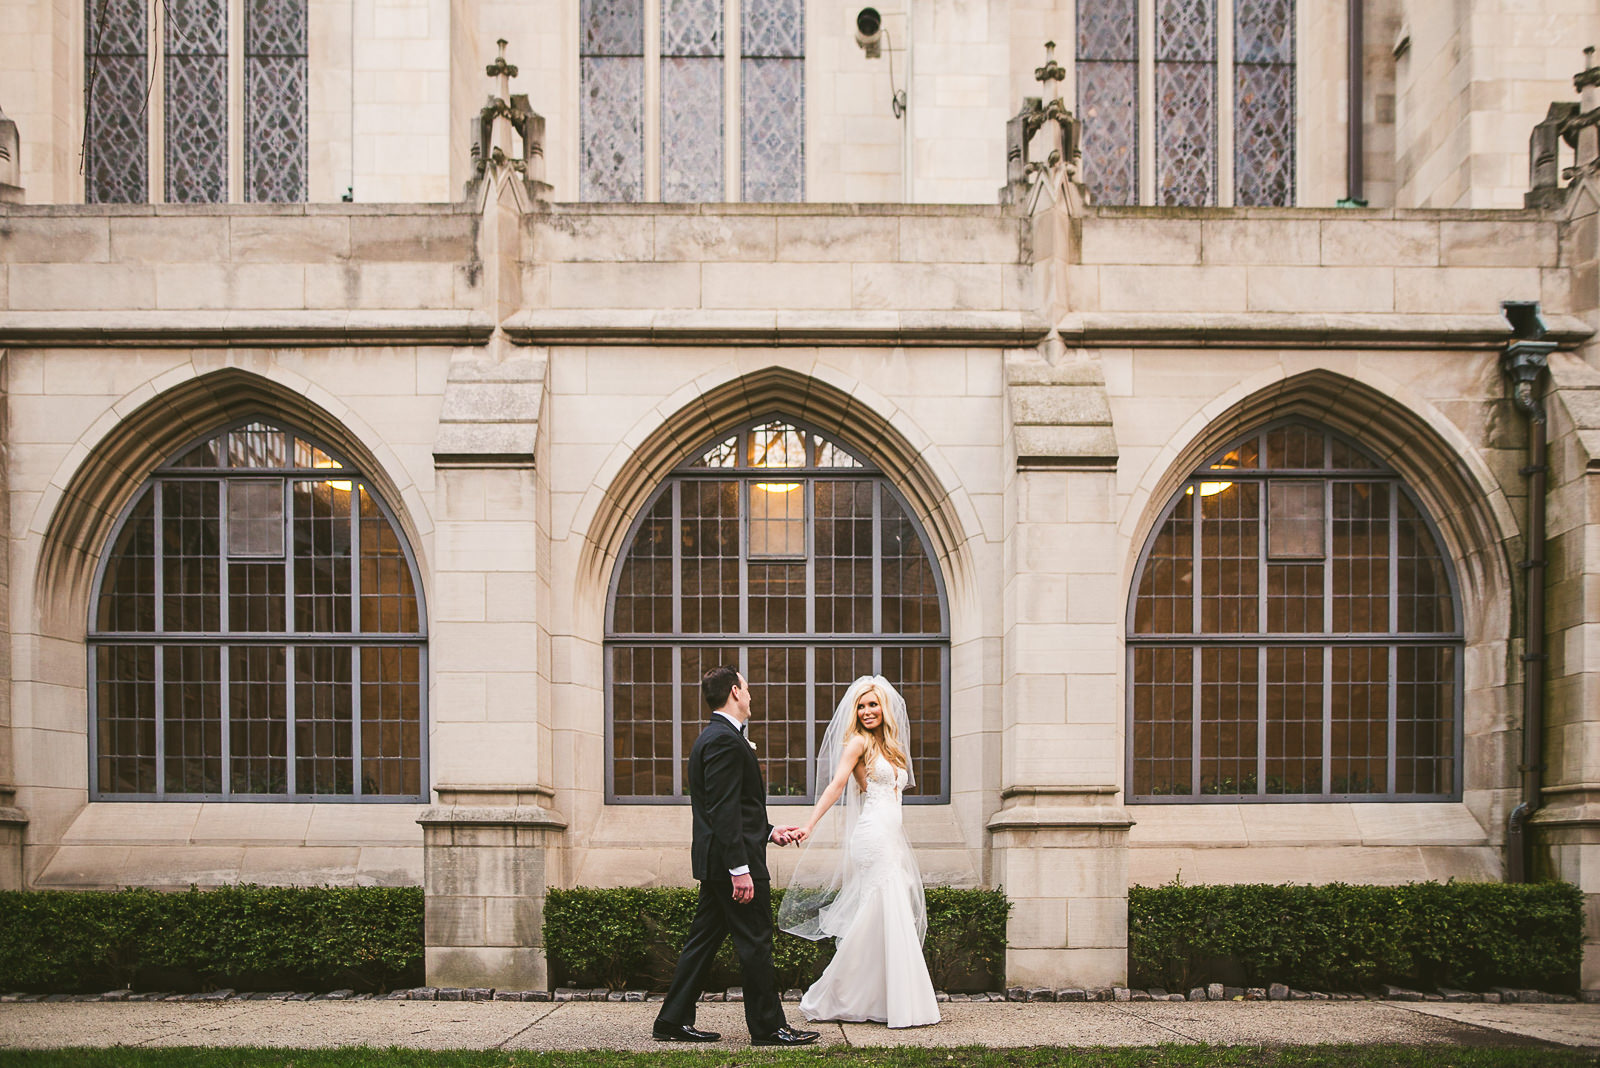 40 chicago wedding photographer - Kayla + Terry // Drake Hotel Chicago Wedding Photos